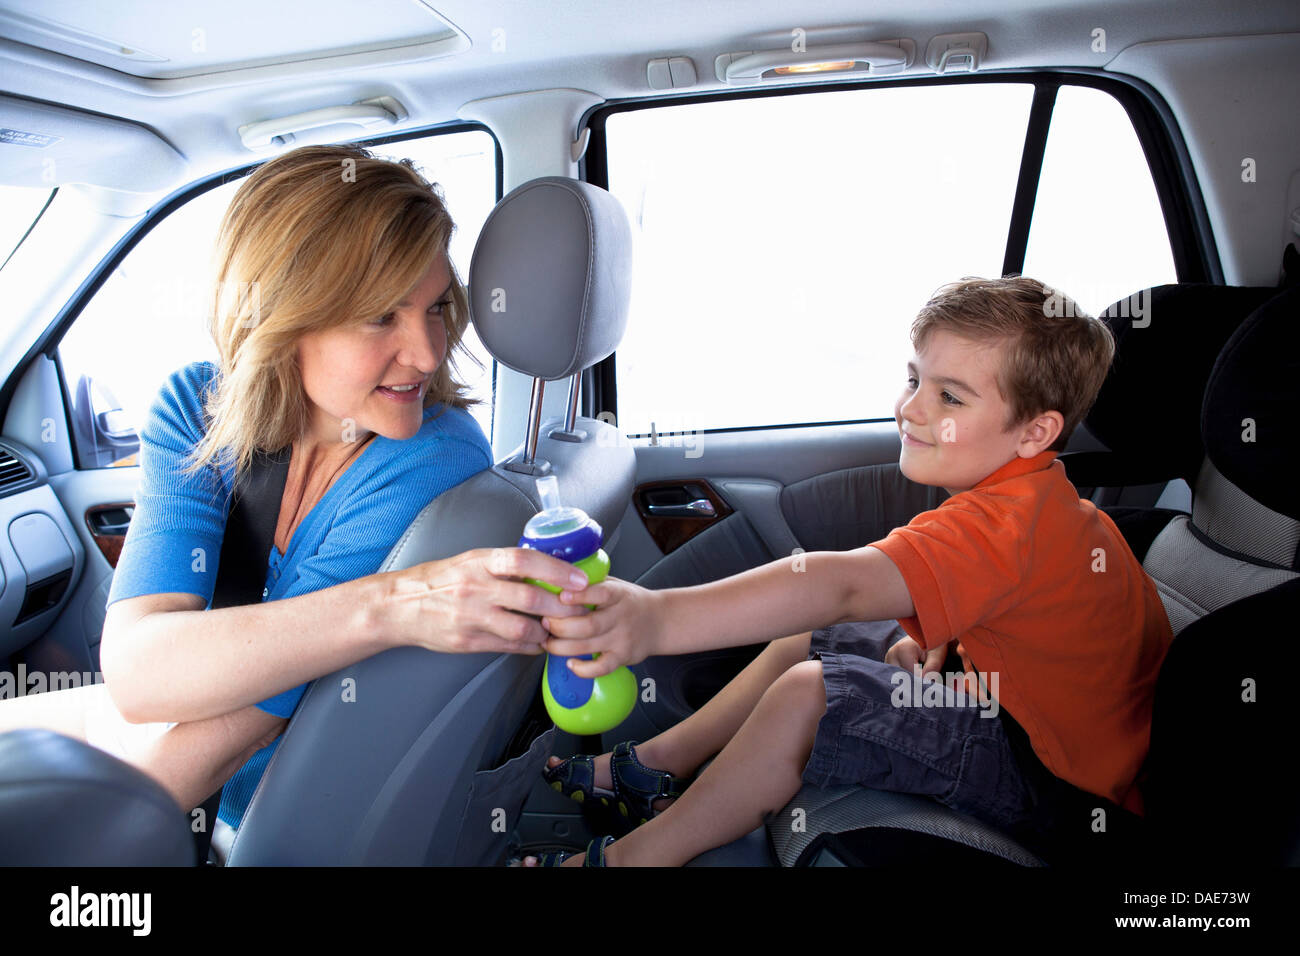 Mother passing bottle to boy in back seat of car - Stock Image